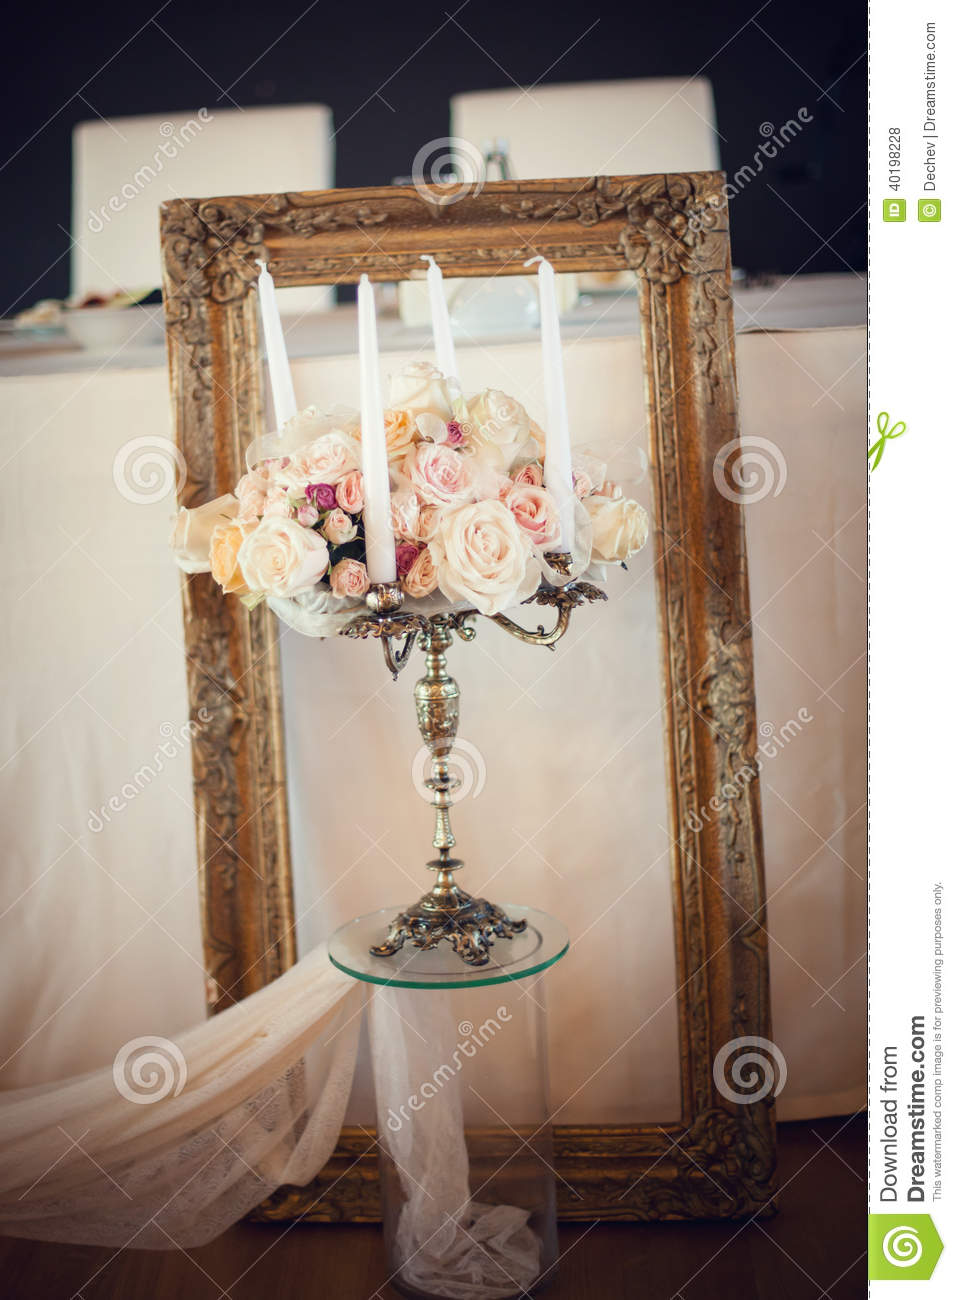 chandelier antique avec le bouquet de mariage fond de mariage photo stock image 40198228. Black Bedroom Furniture Sets. Home Design Ideas